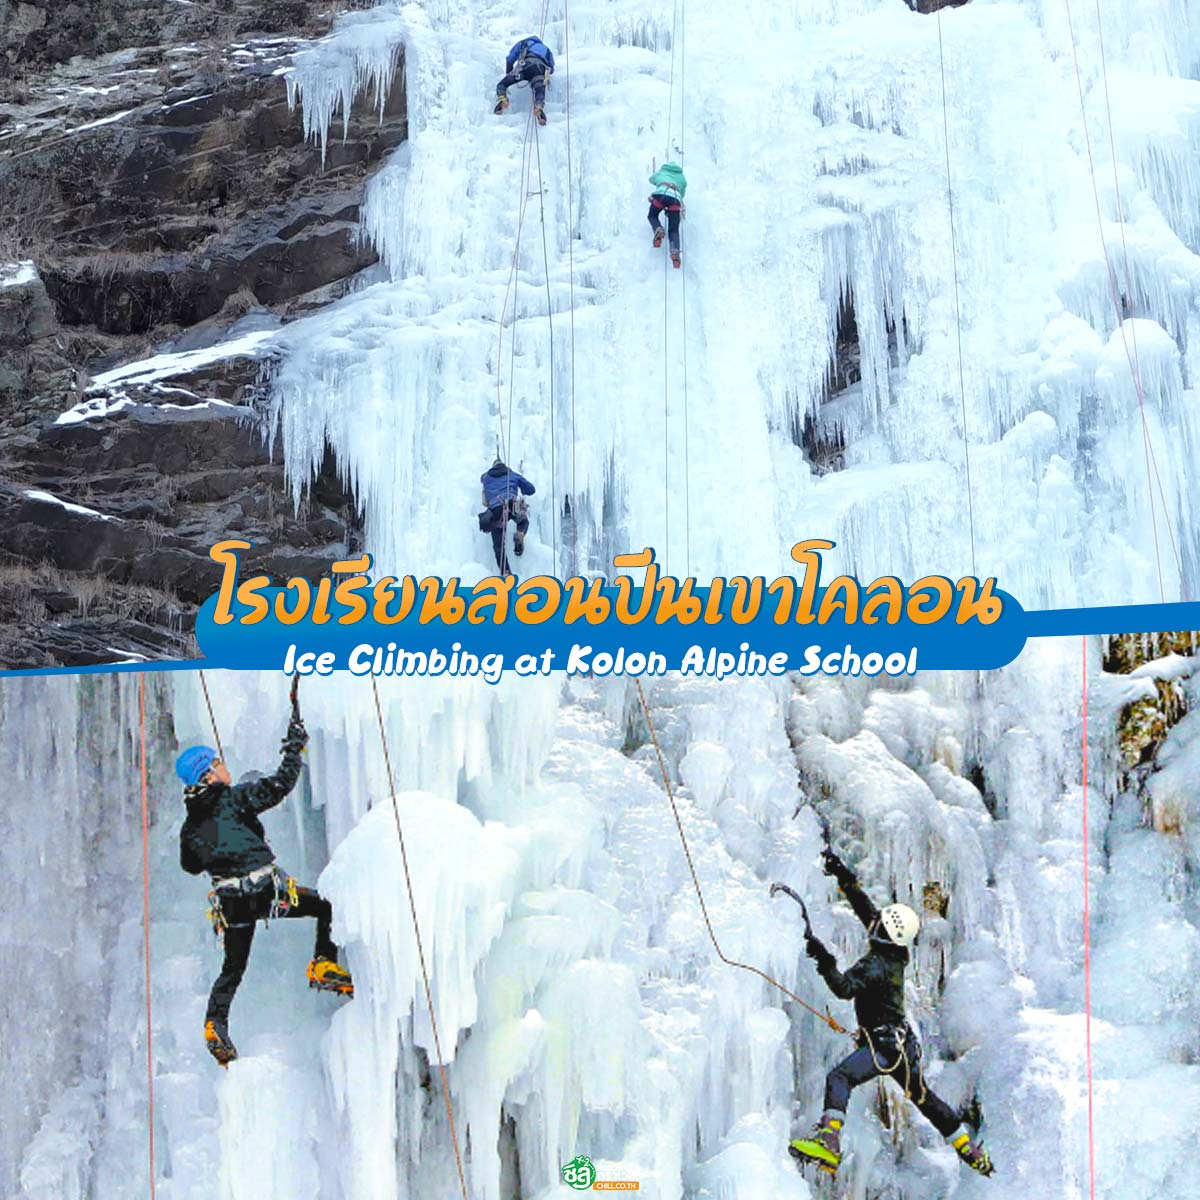 Ice Climbing at Kolon Alpine School